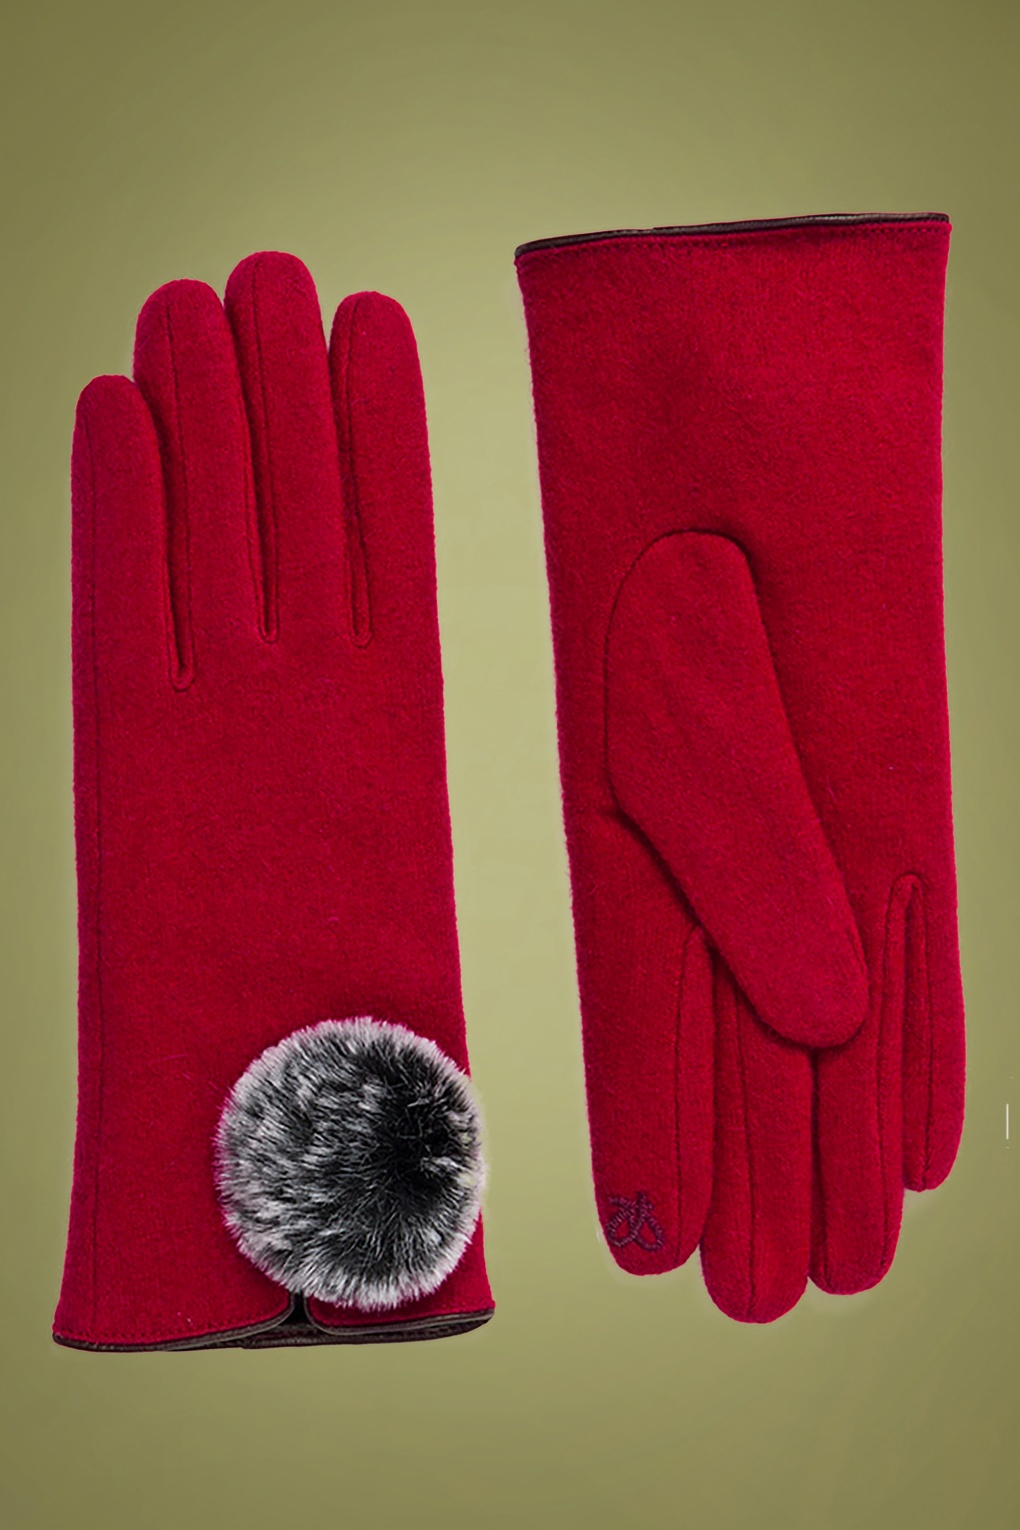 Vintage Style Gloves- Long, Wrist, Evening, Day, Leather, Lace 50s Lucia Wool Gloves in Red £22.40 AT vintagedancer.com